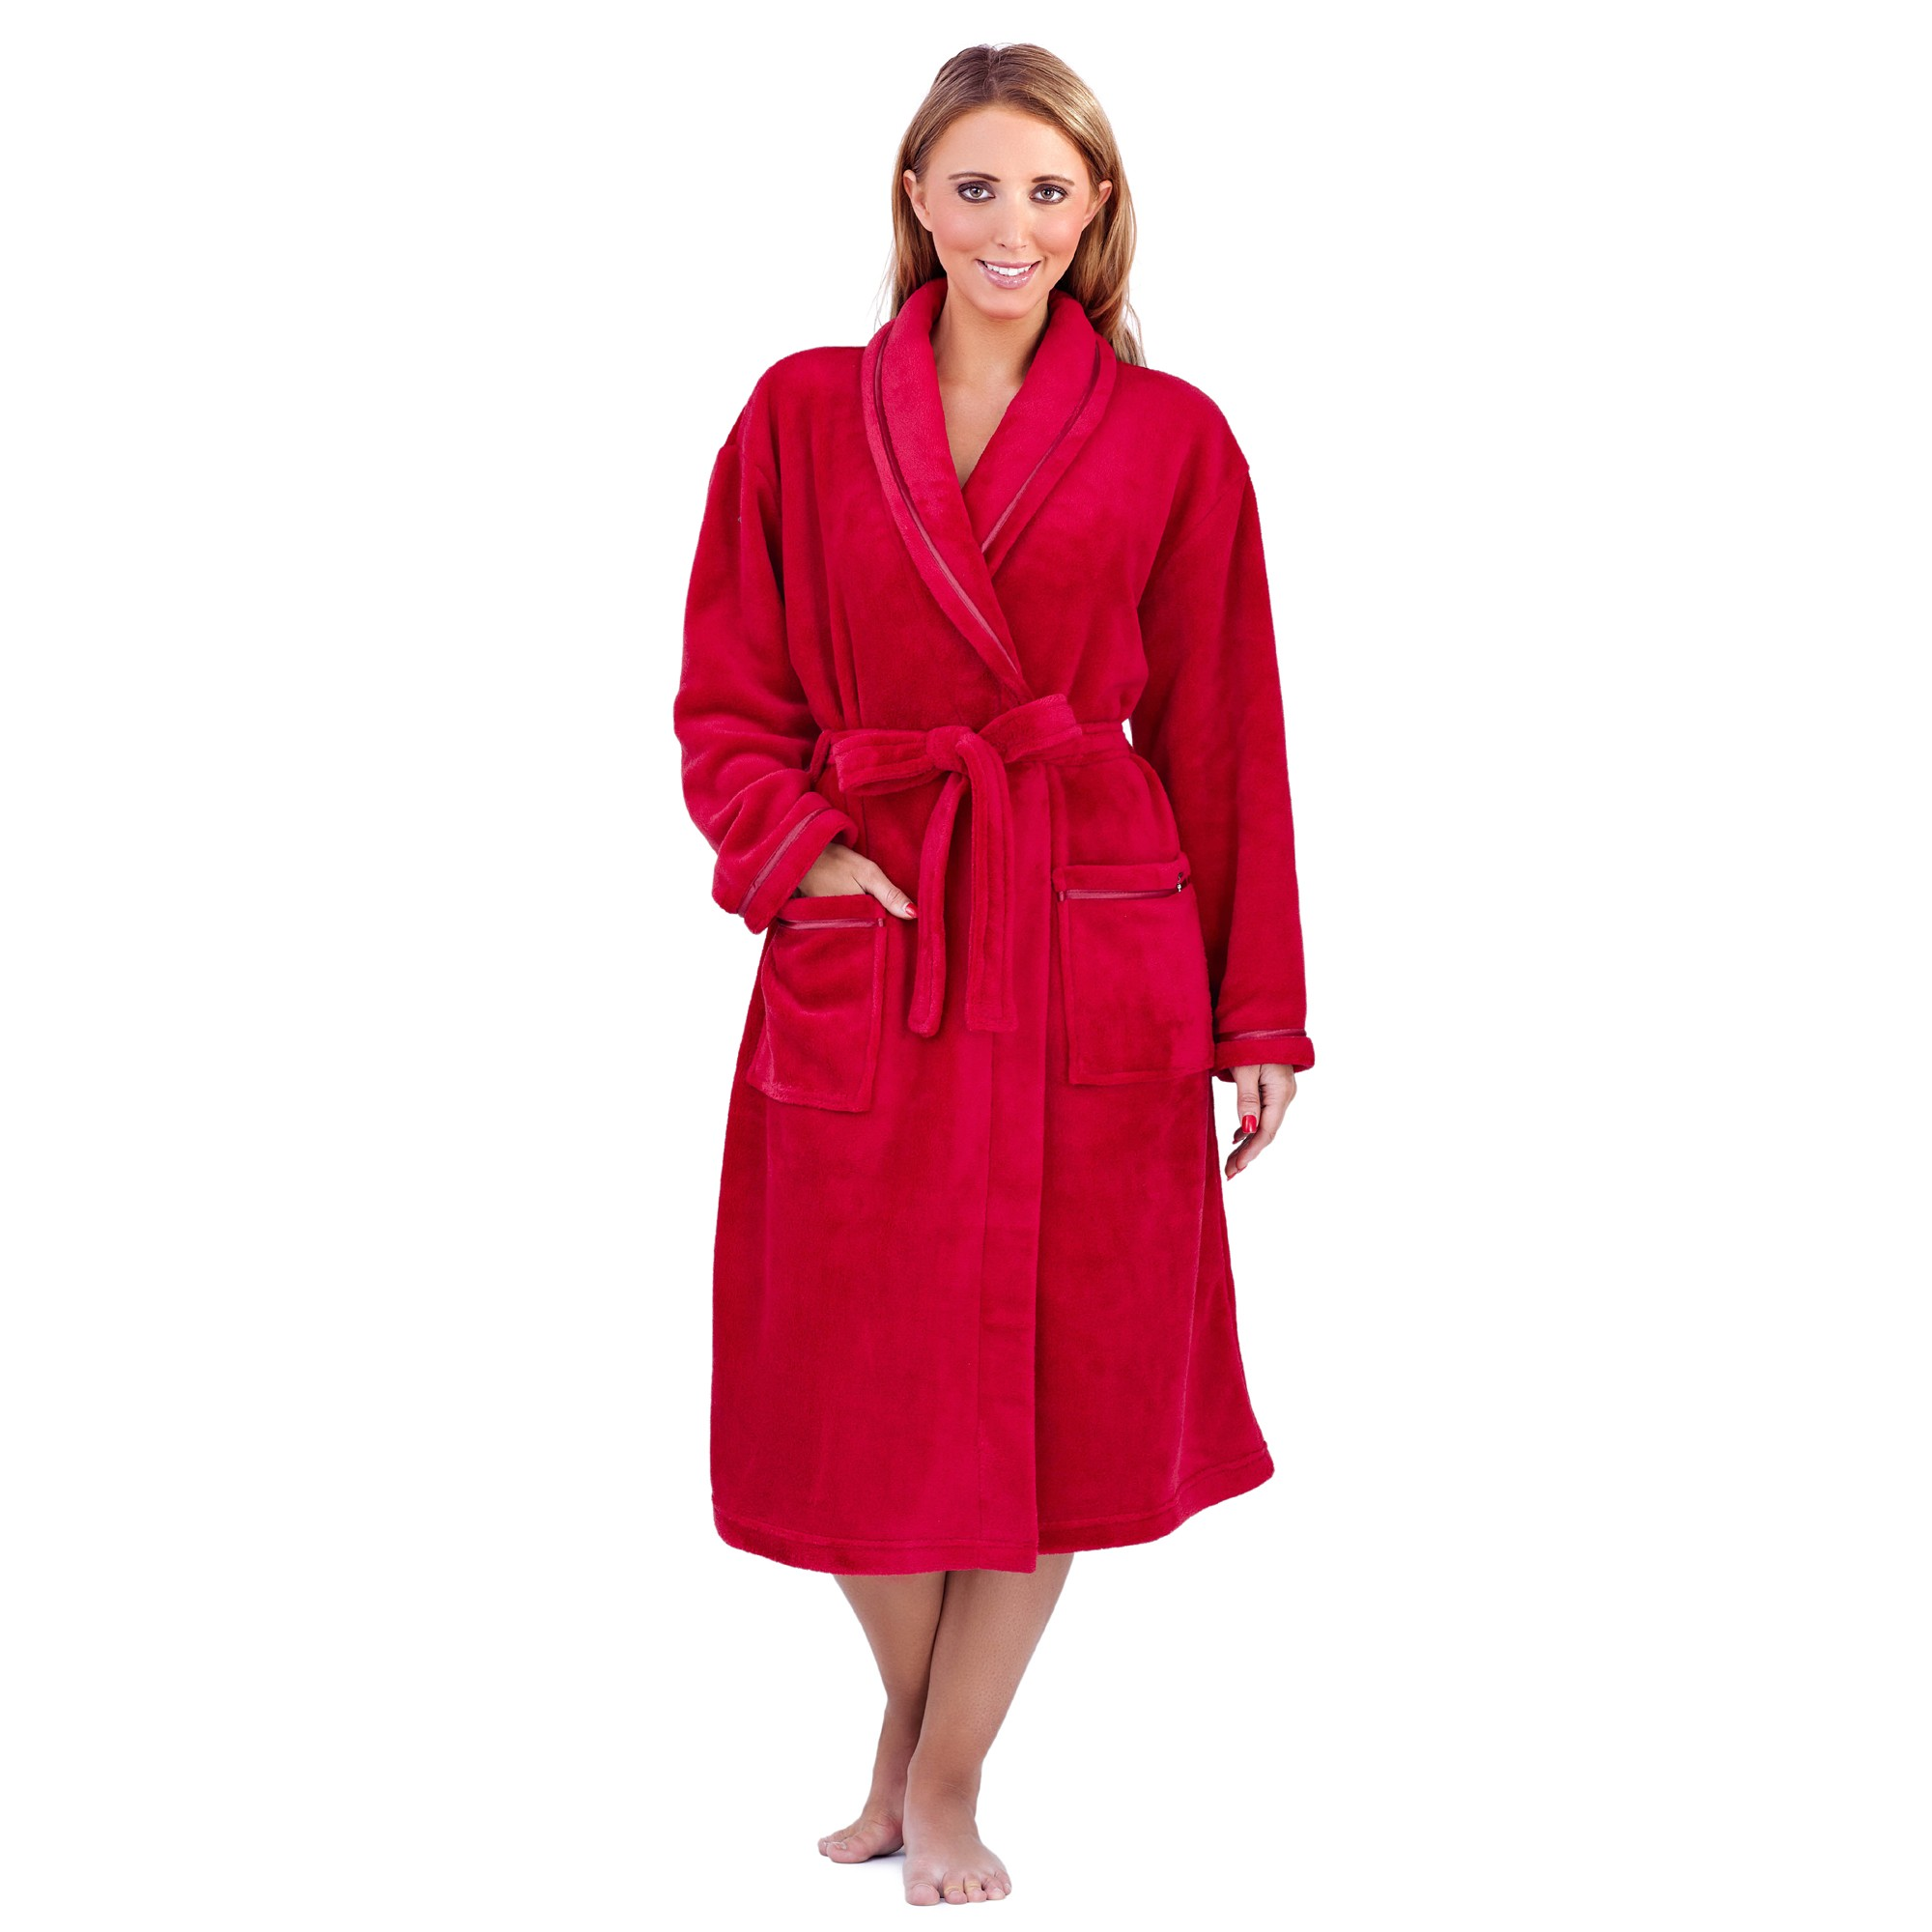 Ladies Super Soft Fleece Dressing Gown - Red